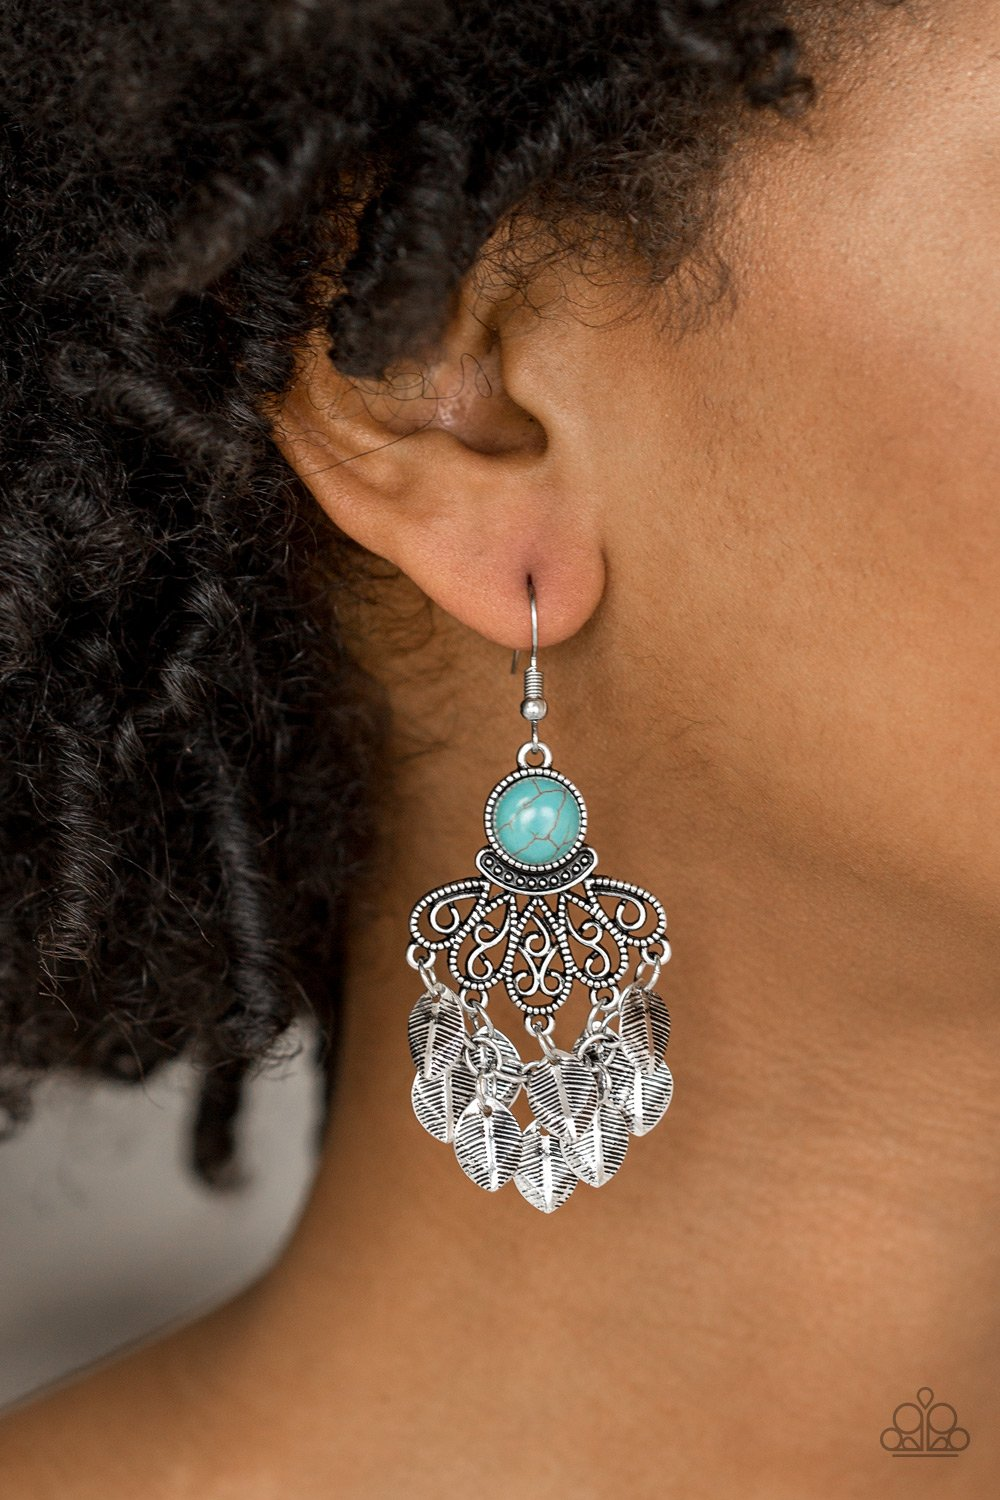 Dainty Brass Leaf Earrings with Turquoise Stones